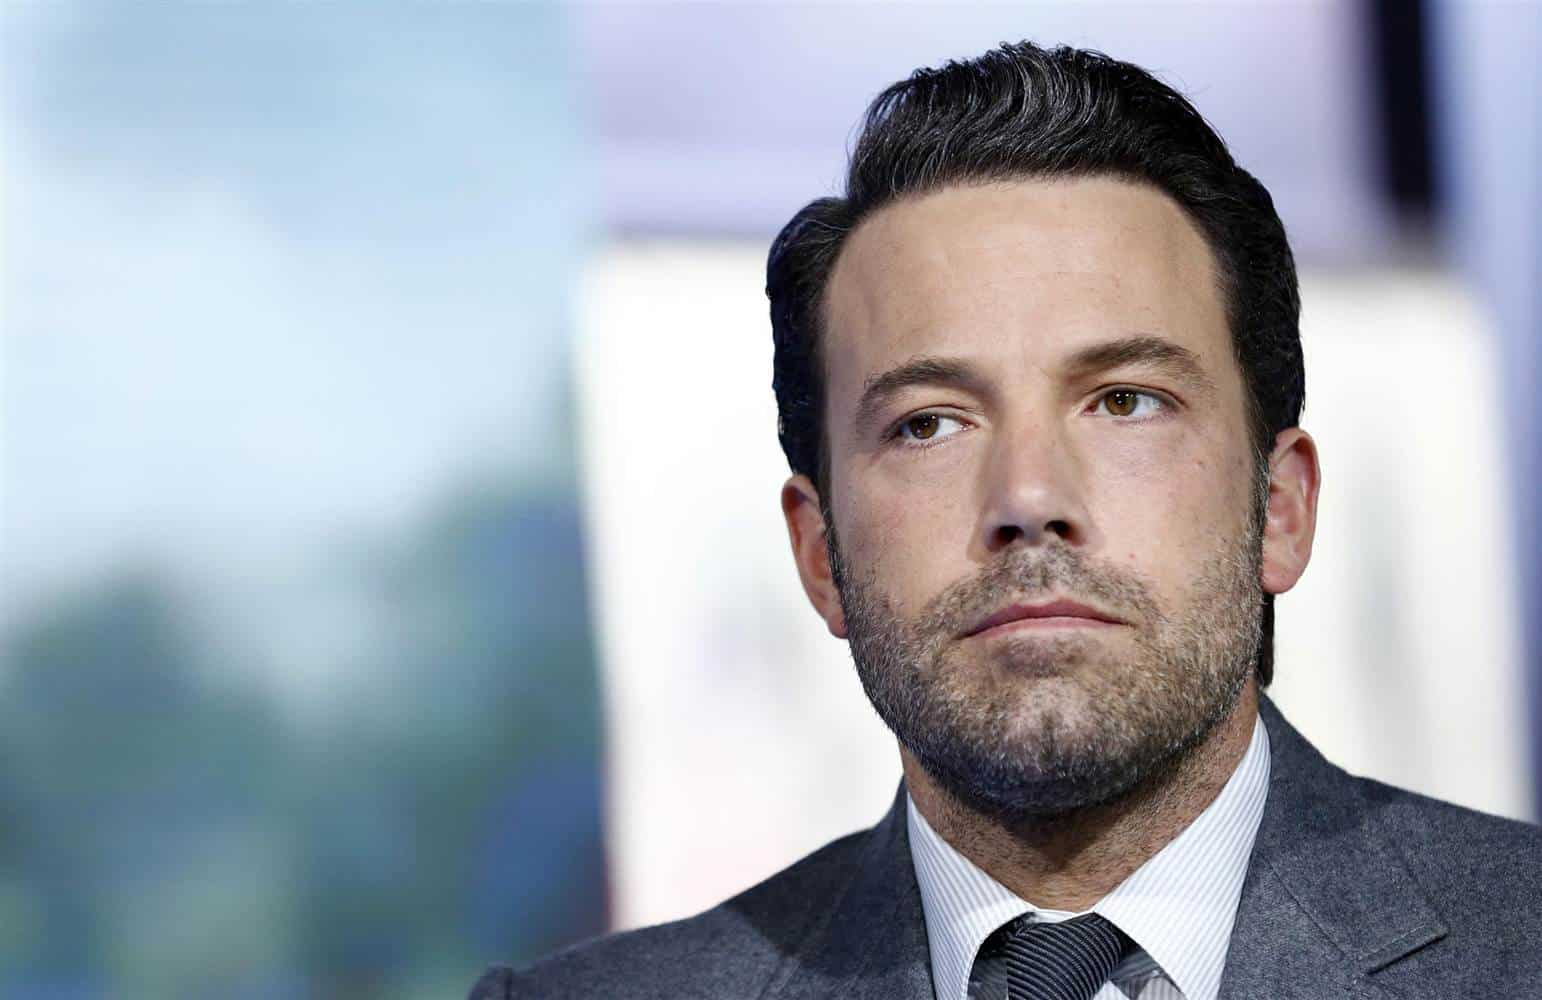 Ben Affleck Completed Rehab for Alcohol Addiction - Freedom From Addiction